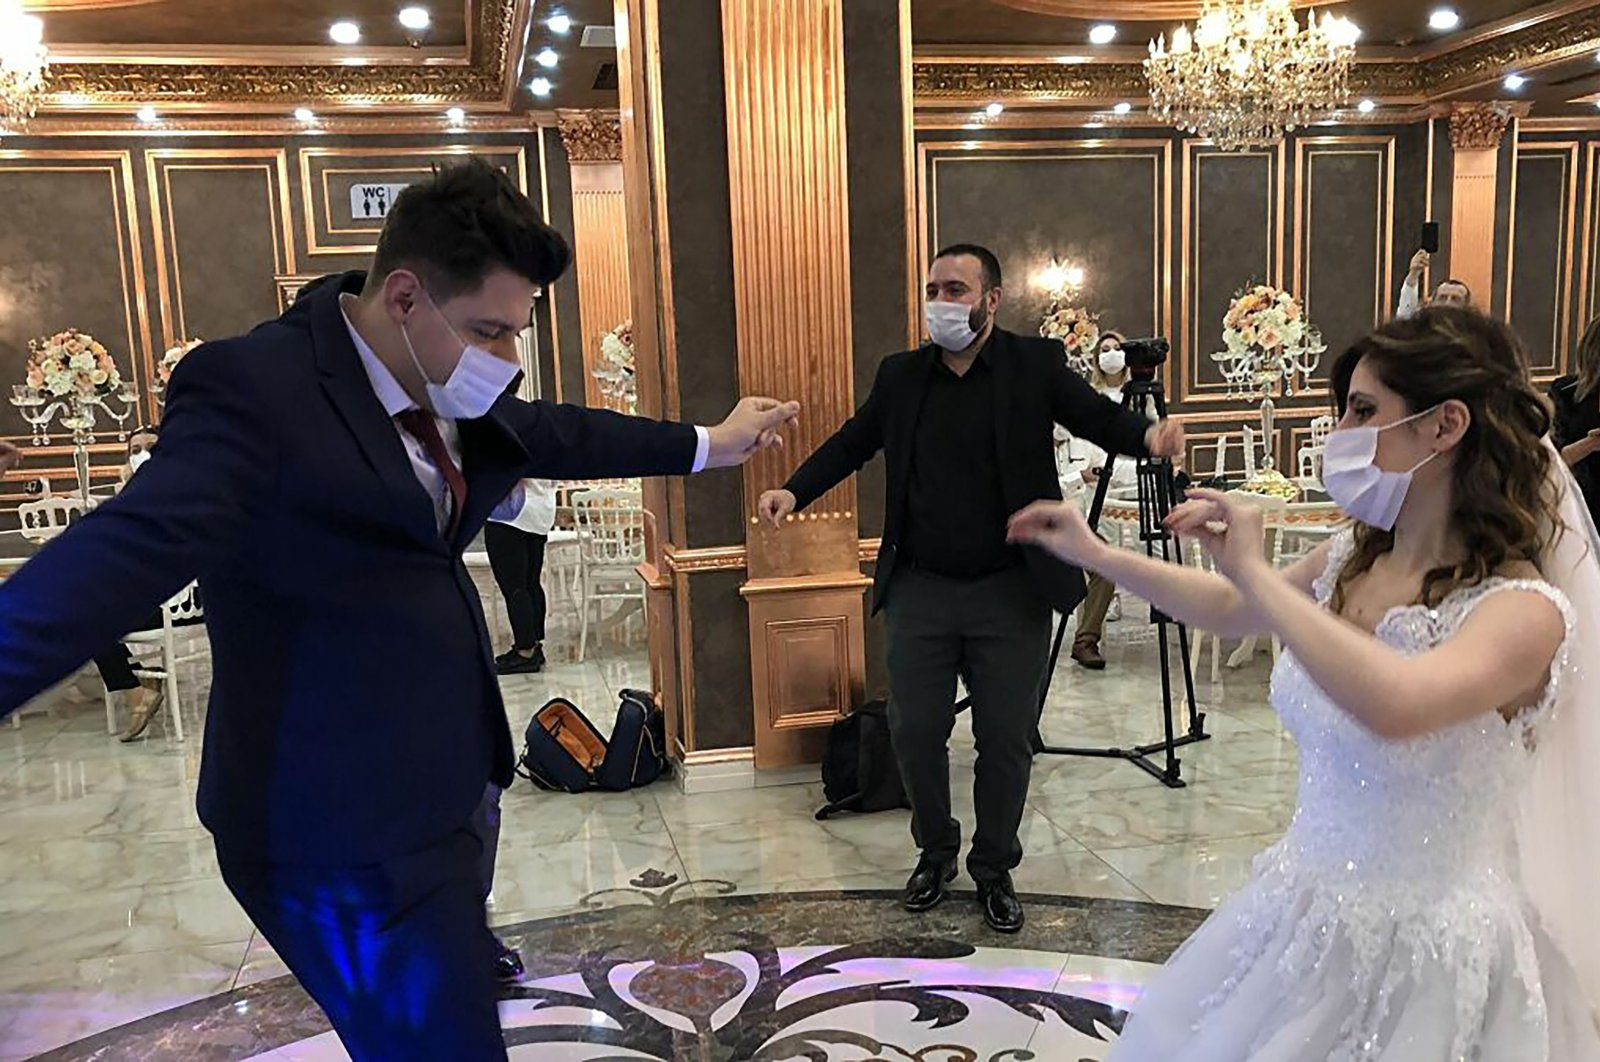 A newly-wed couple dances at their wedding ceremony in Turkey on June 25 2020. (Sabah Photo)